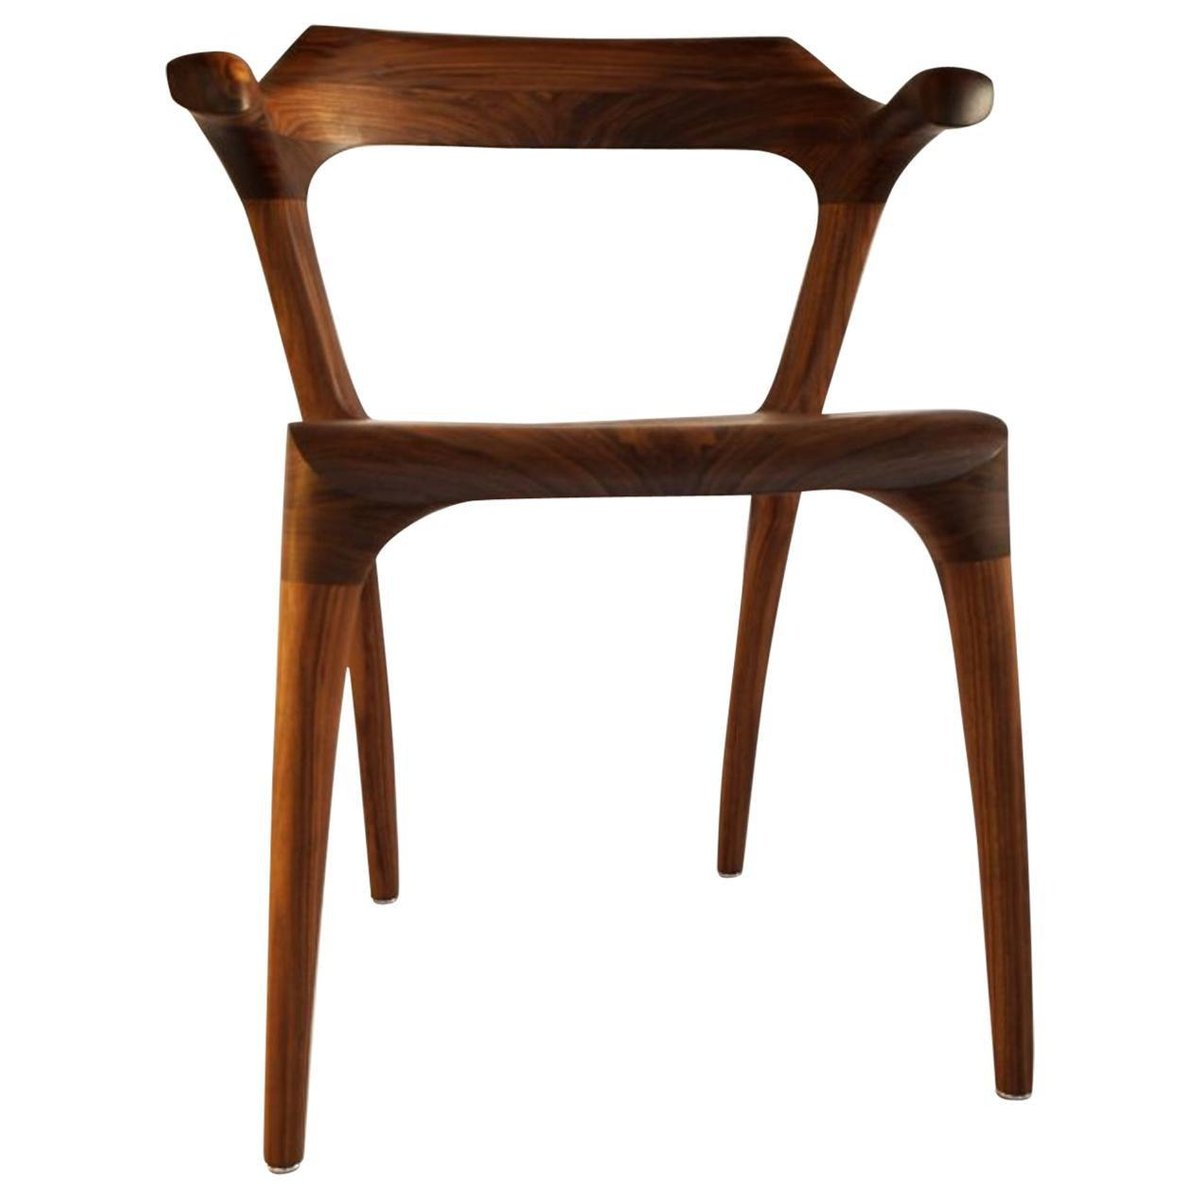 Flamingo Beak Dining Room Chair Handcrafted And Designed By Morten Stenbaek For Sale At Pamono